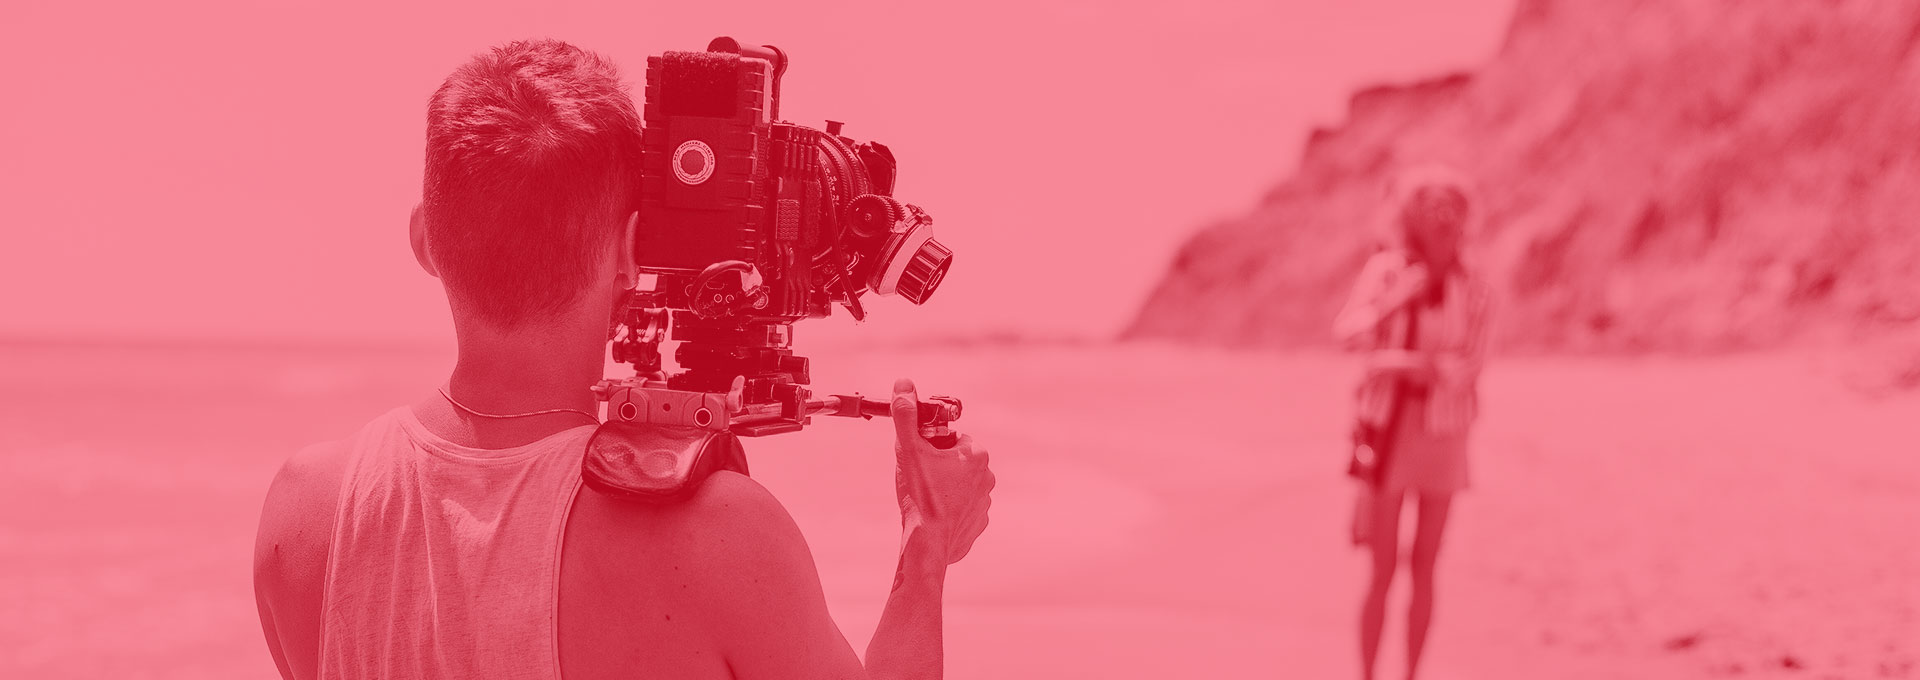 BorrowLenses: Photography and Film Gear Rentals Promotes The Circular Sharing Economy